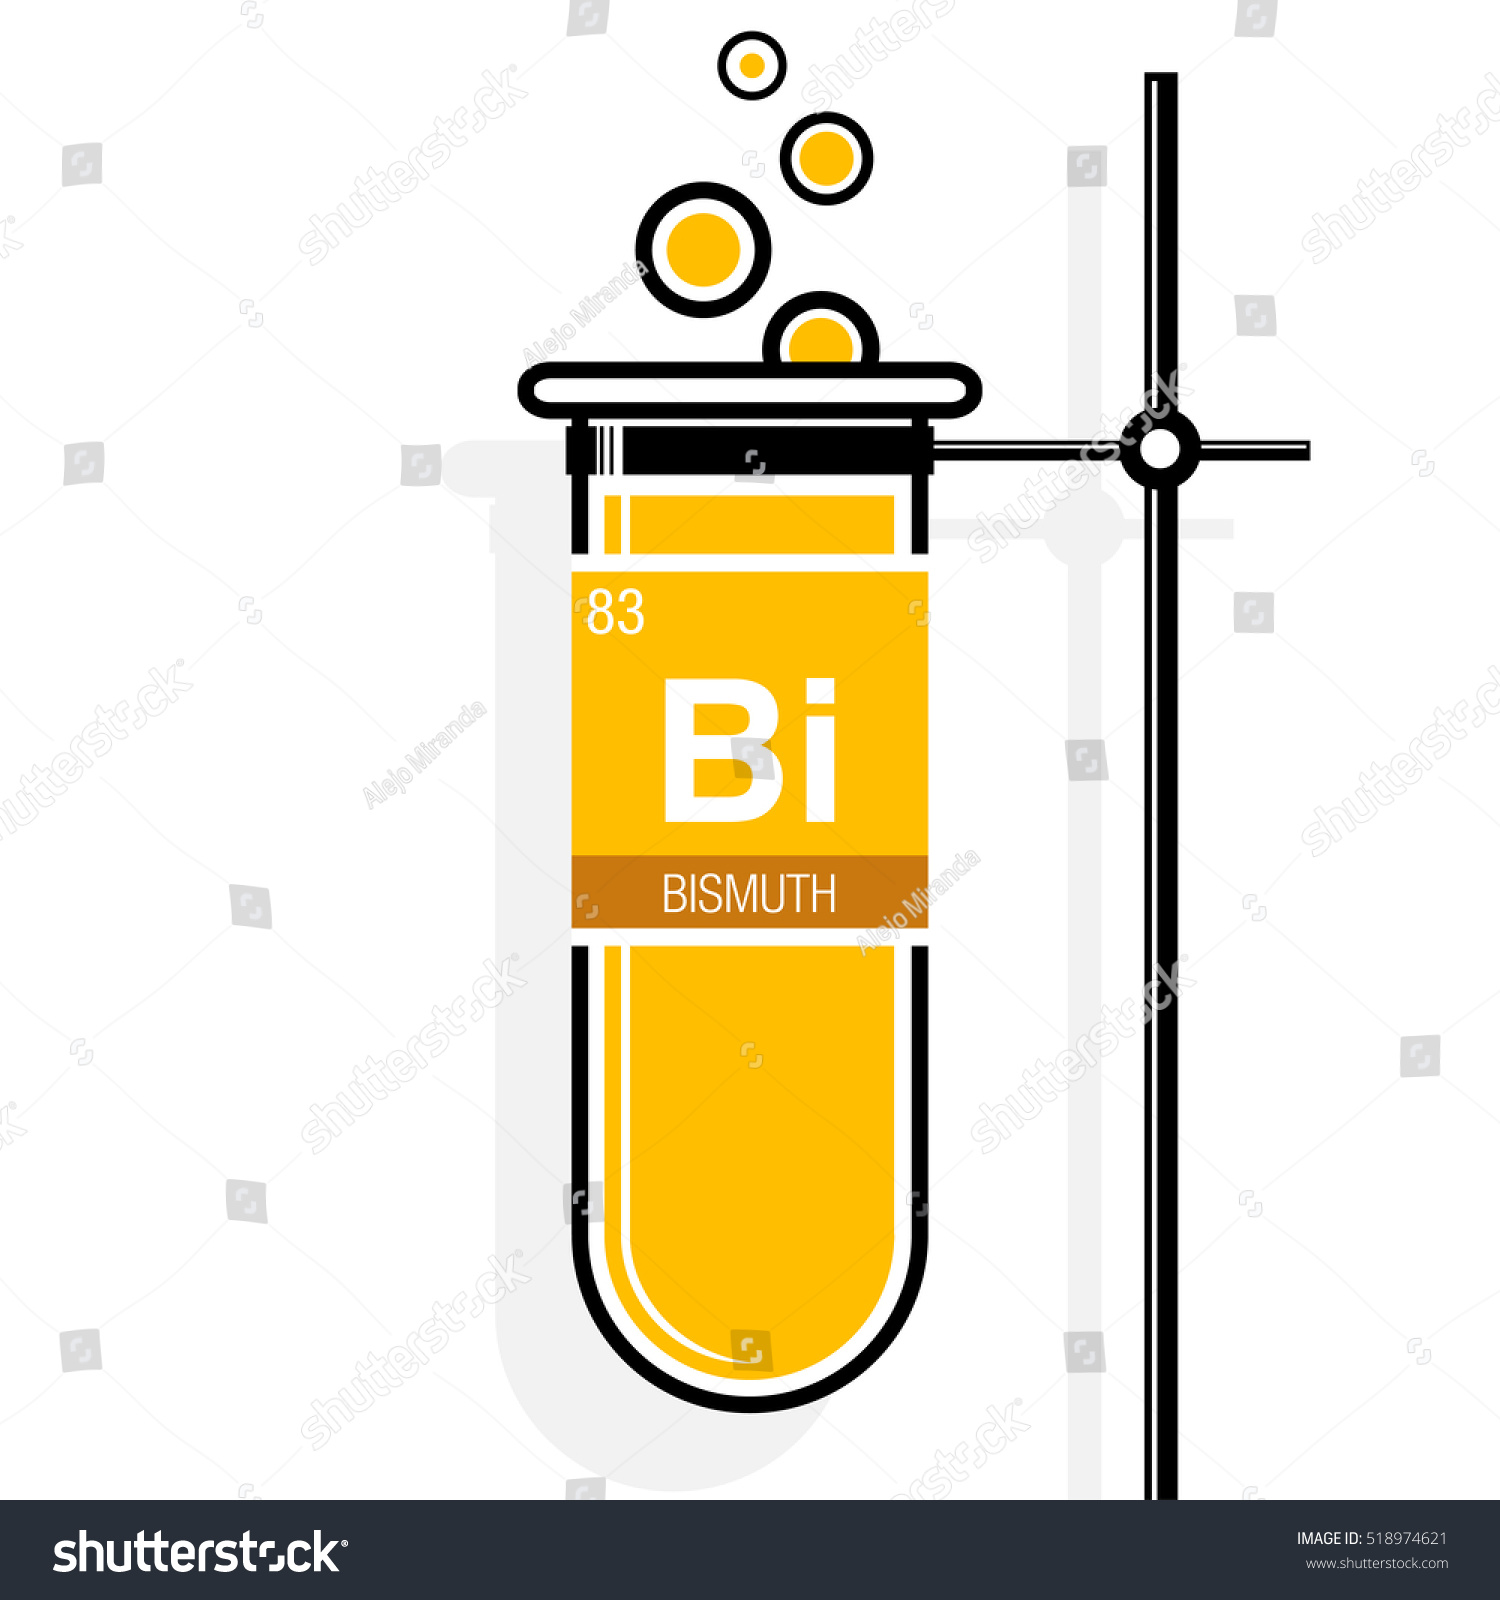 Bismuth symbol element number 83 periodic stock vector 518974621 bismuth symbol element number 83 of the periodic table of the elements chemistry buycottarizona